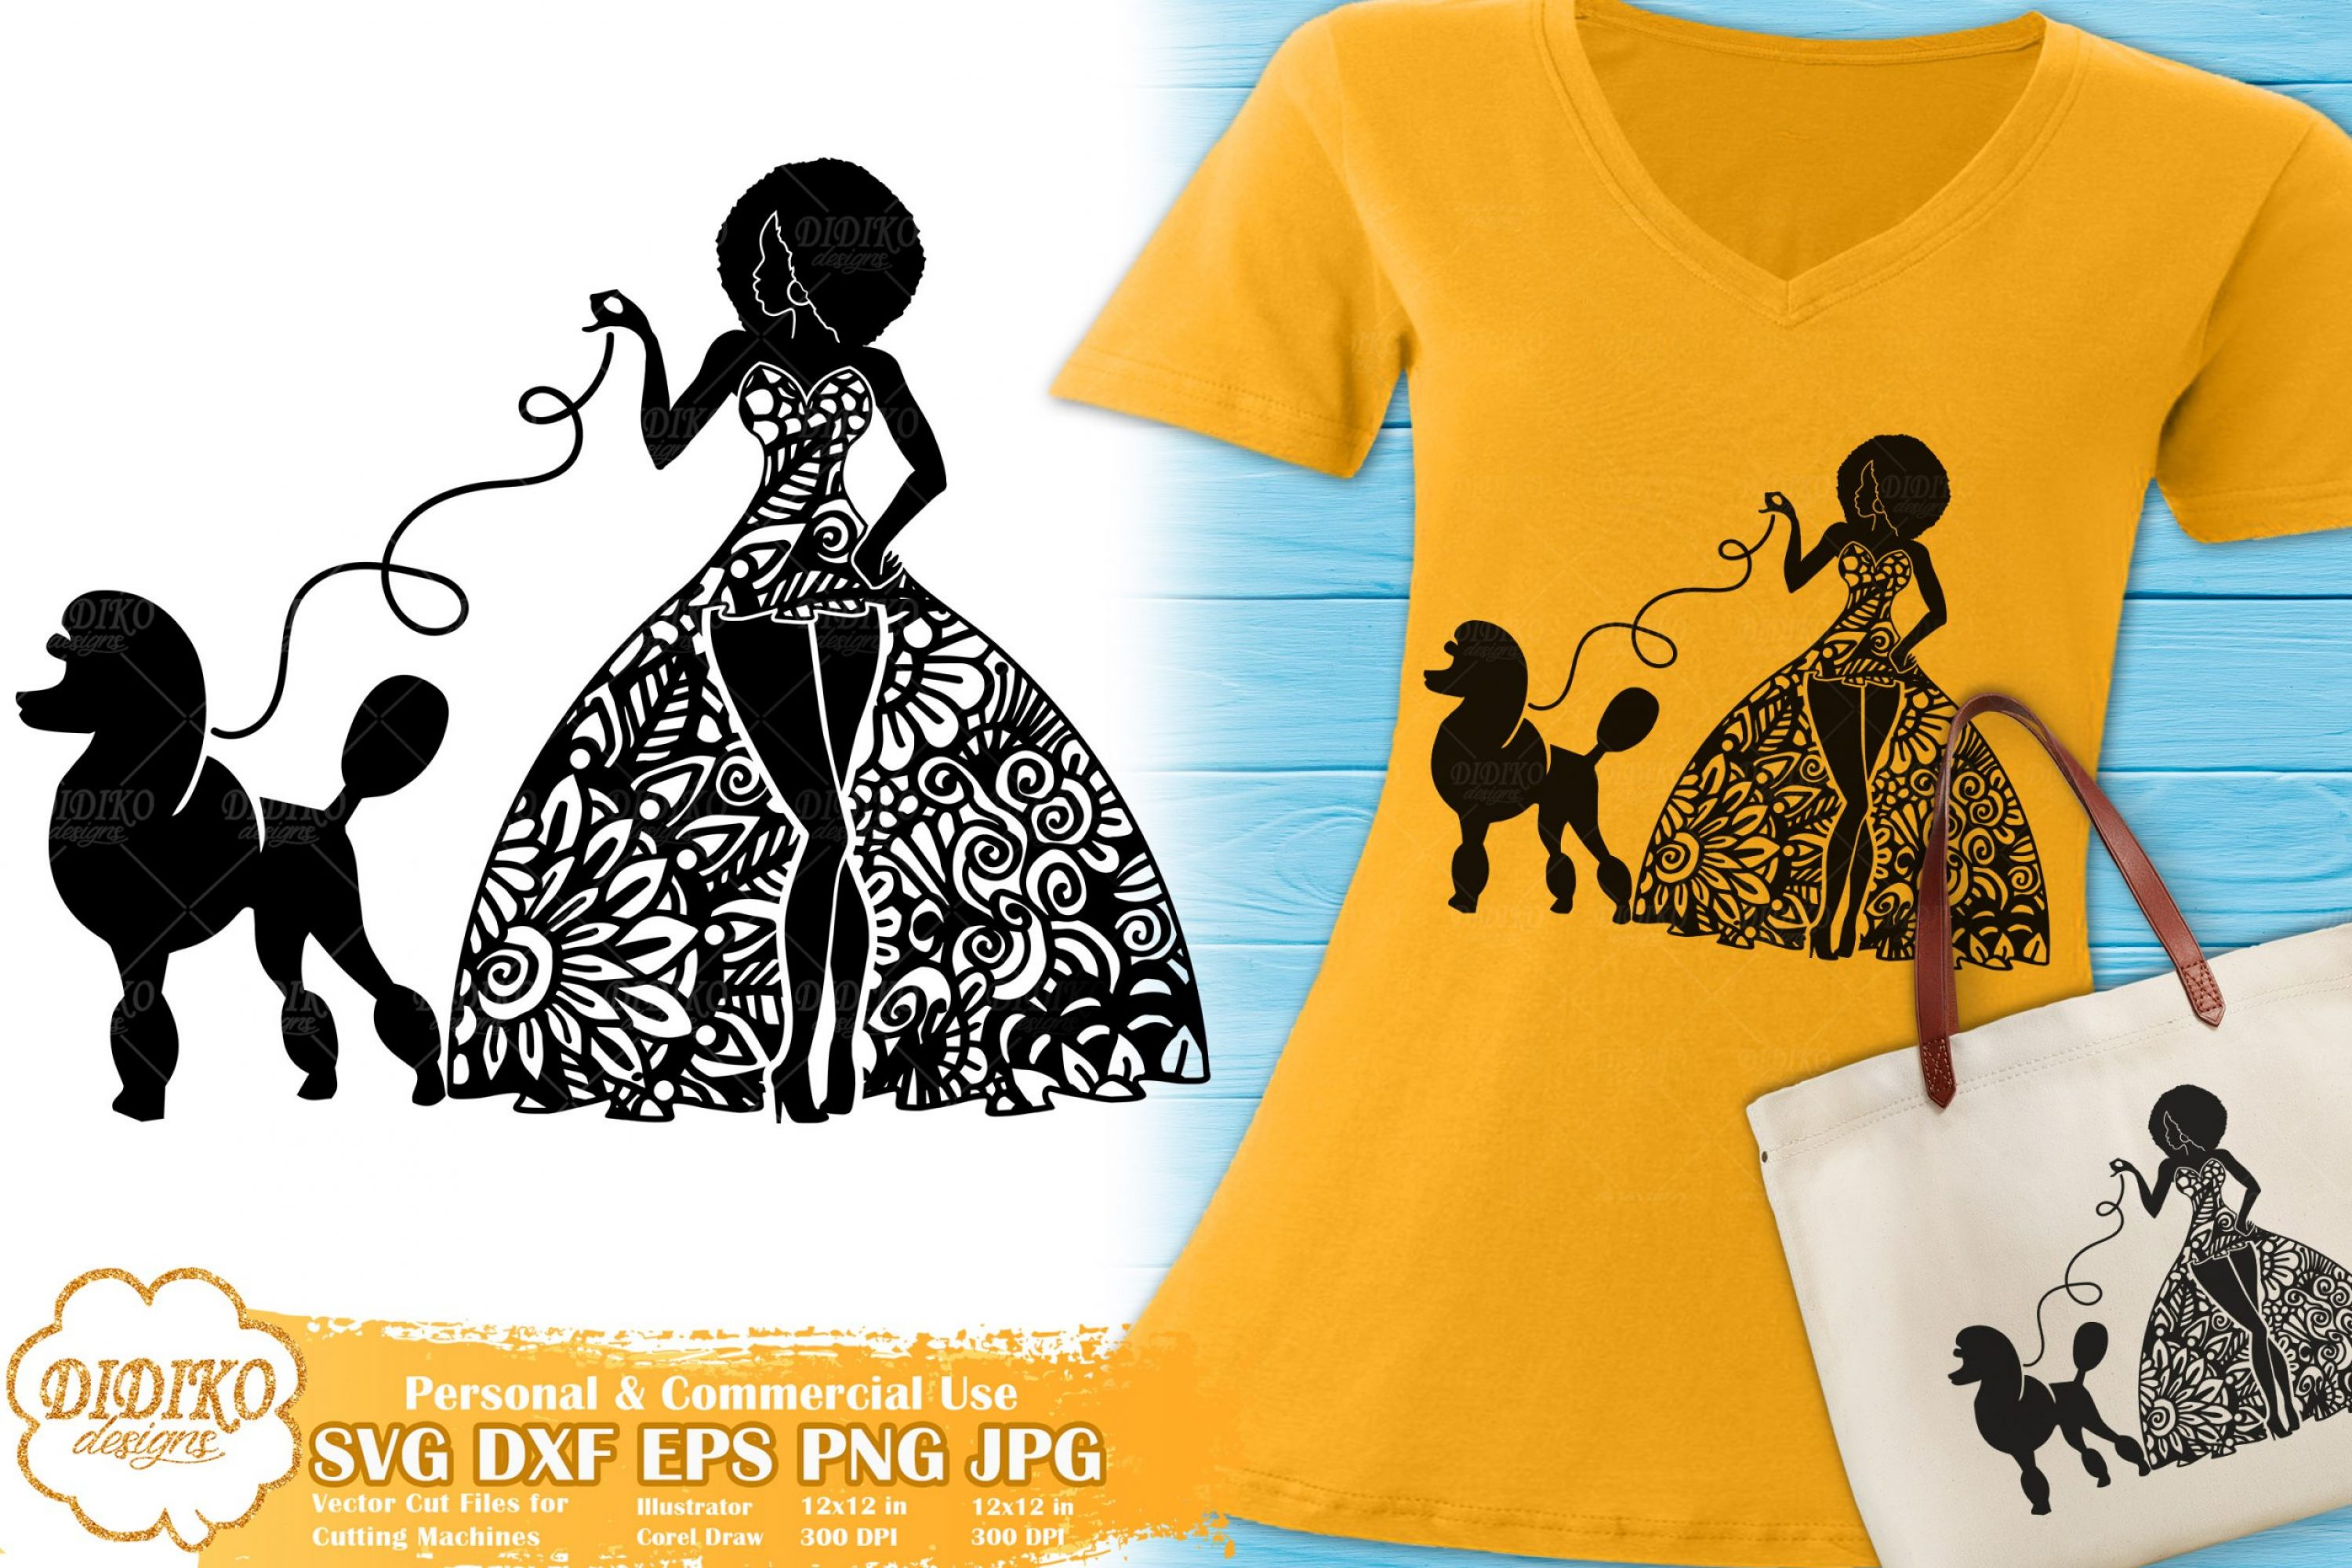 Black Woman Fashion SVG #7 | Zentangle Woman with Poodle SVG